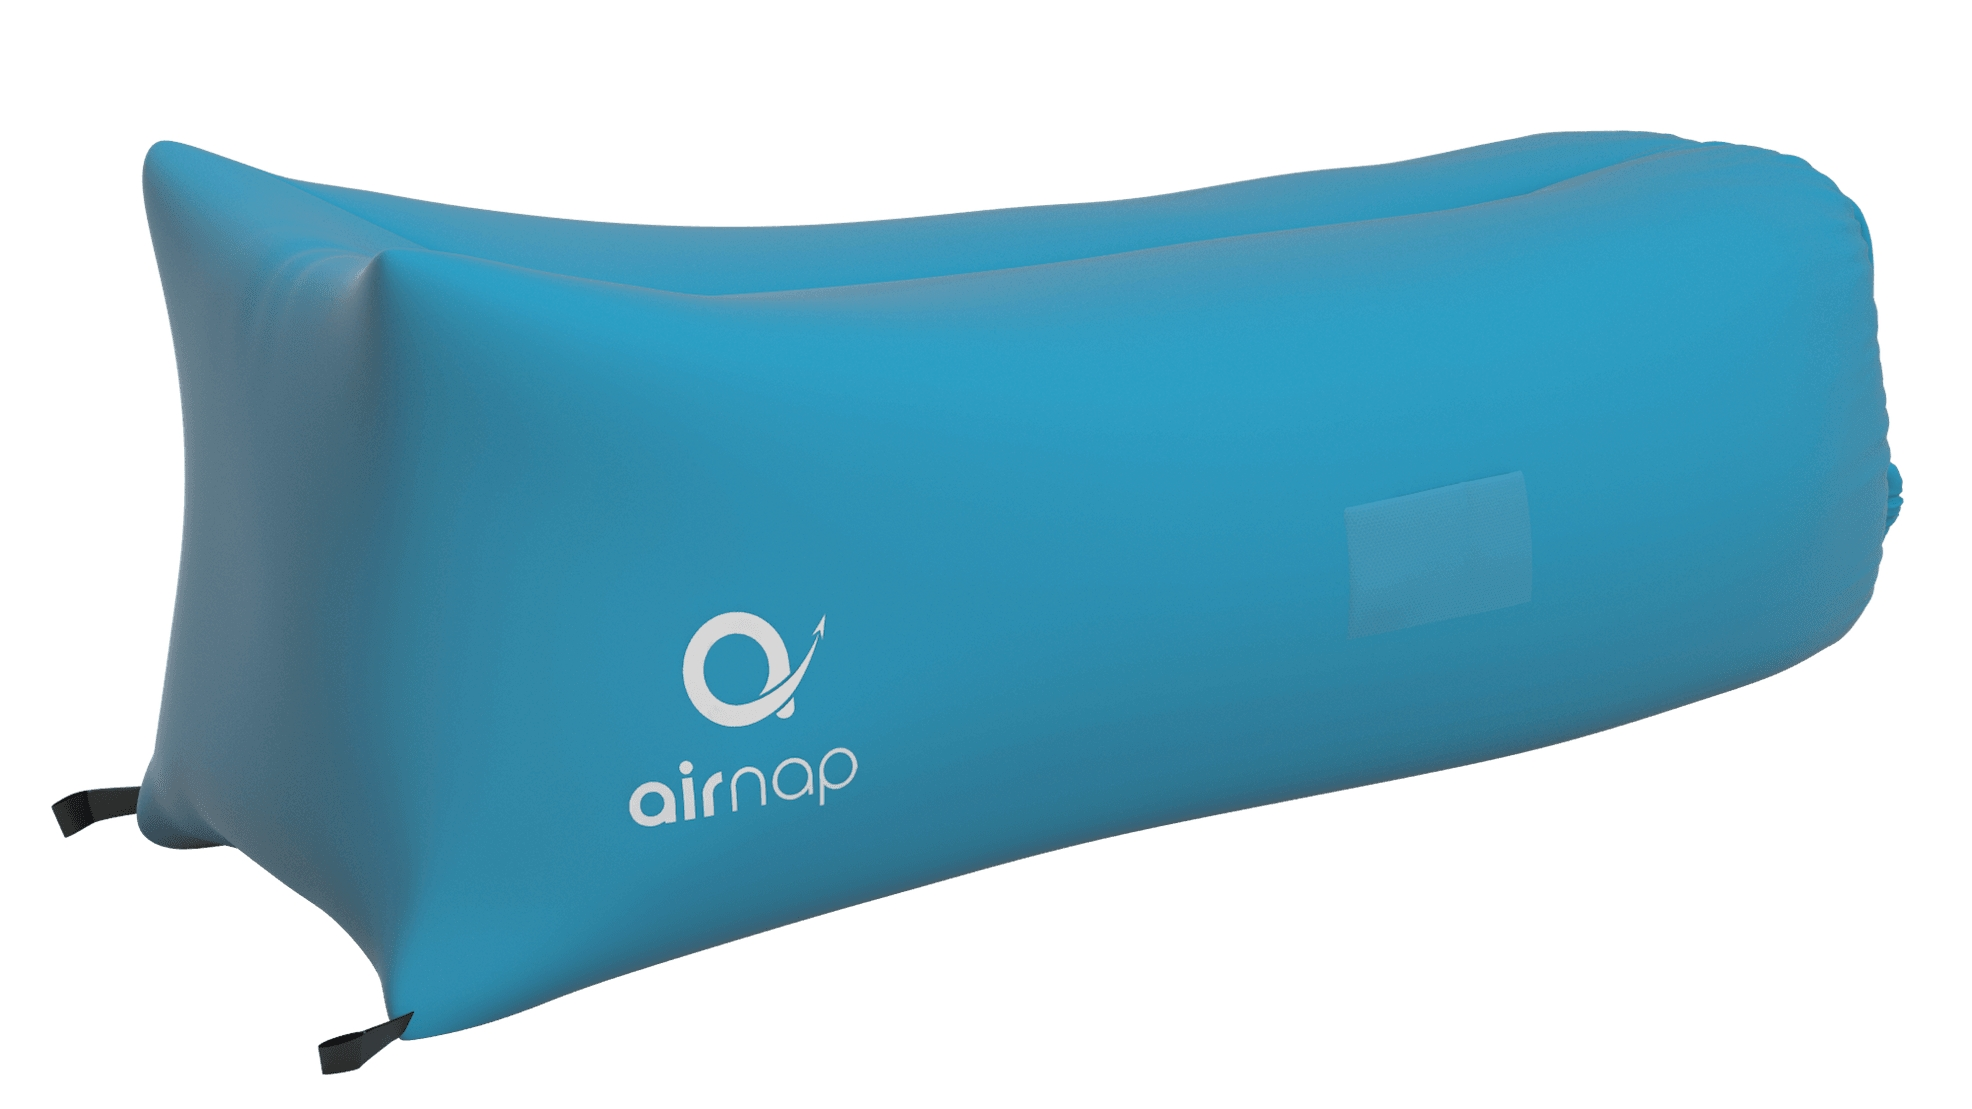 535f54f1cb2c2dc0e39f6d5c8d07bda0 - AIRNAP, Le hamac gonflable MADE in FRANCE à adopter d'urgence!